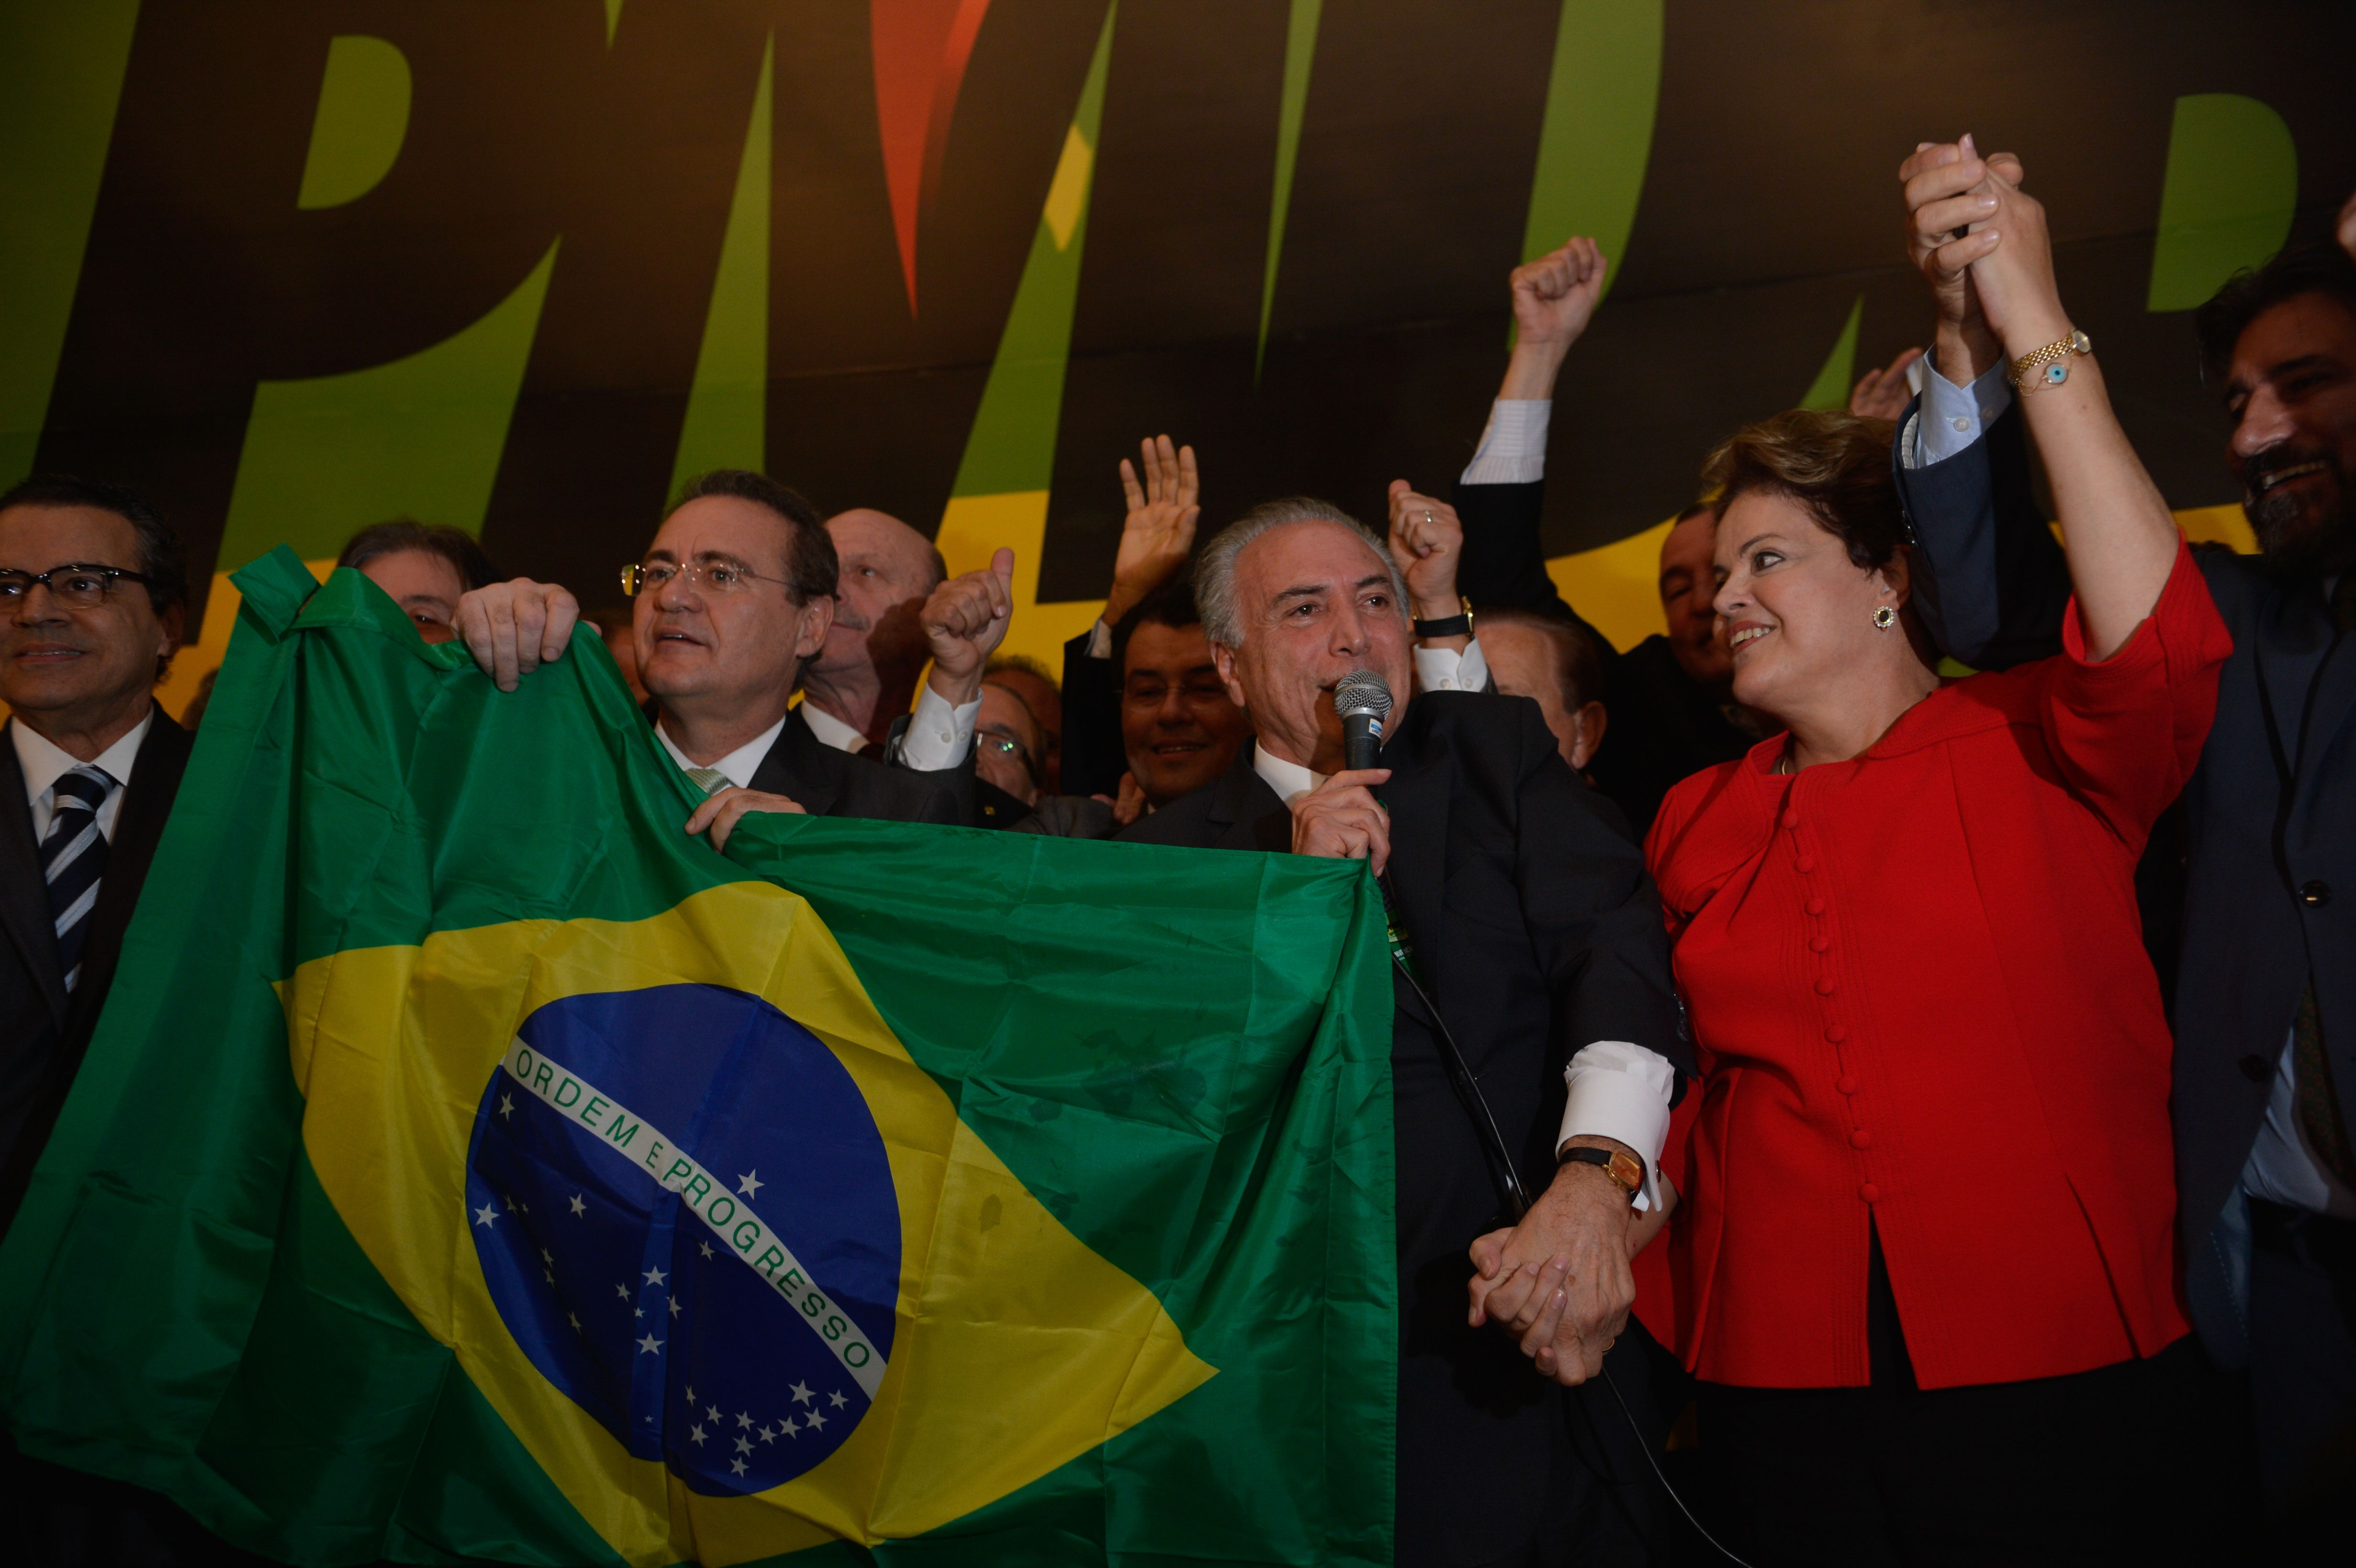 Dilma Rousseff receives support from the PMDB Party for her reelection campaign